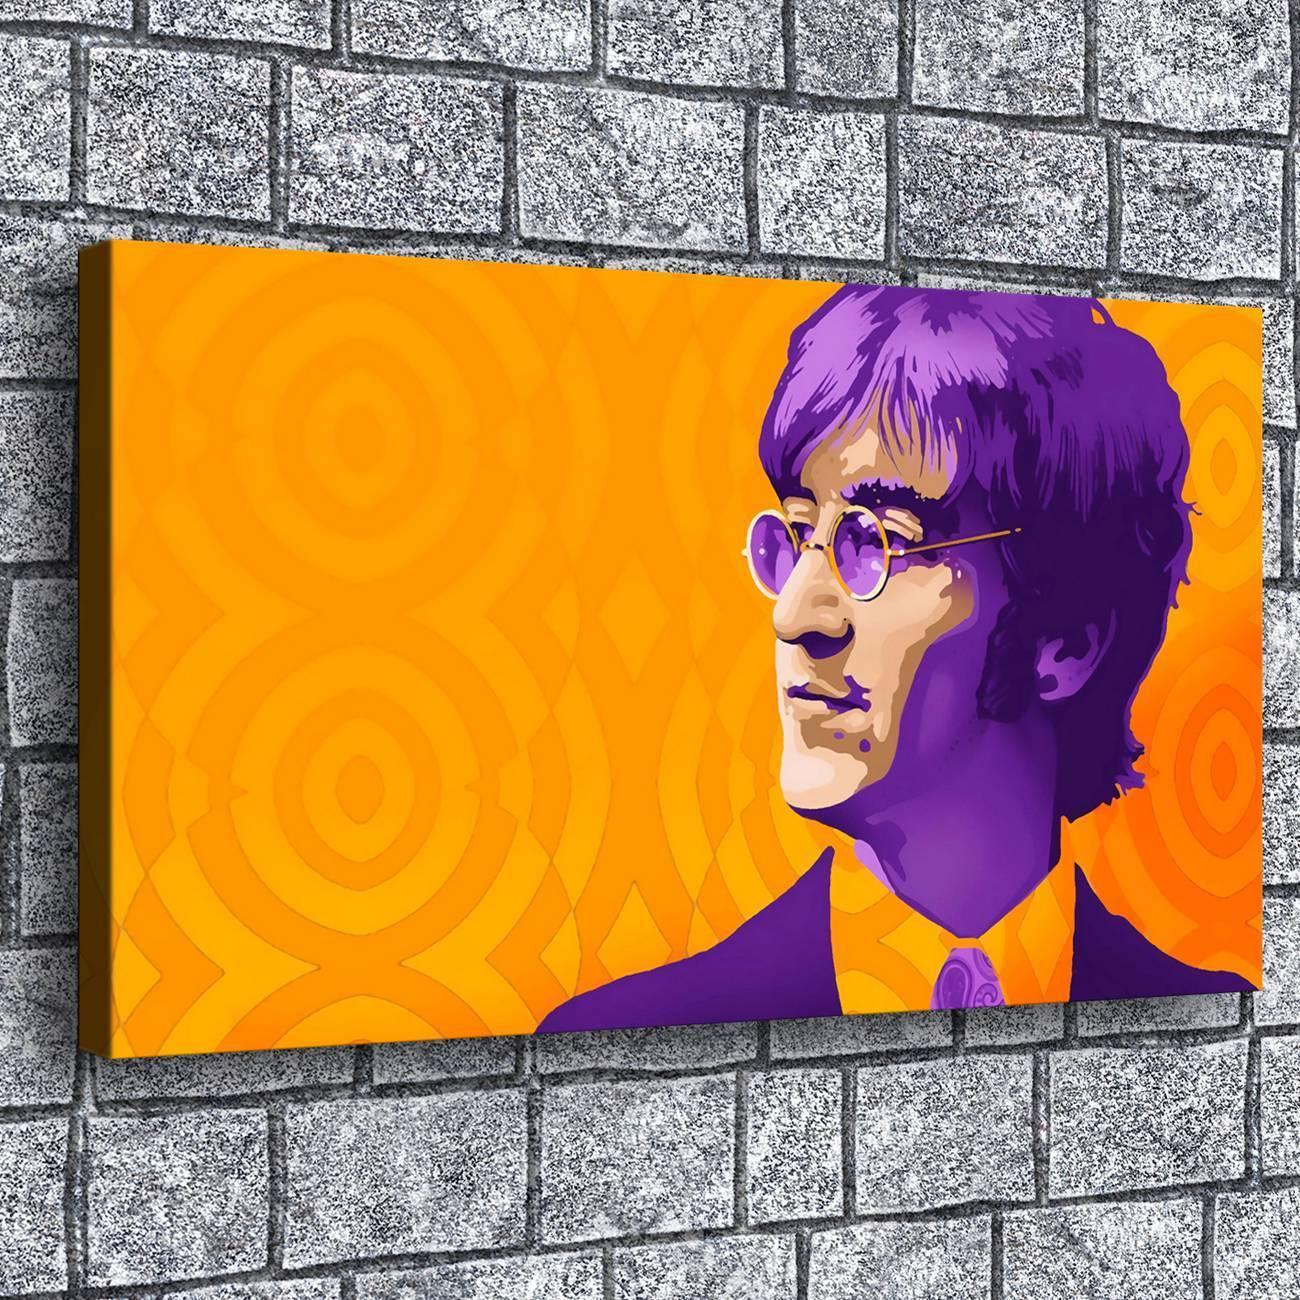 2019 The BeatlesHome Decor HD Printed Modern Art Painting On Canvas Unframed Framed From Qq53561562 704